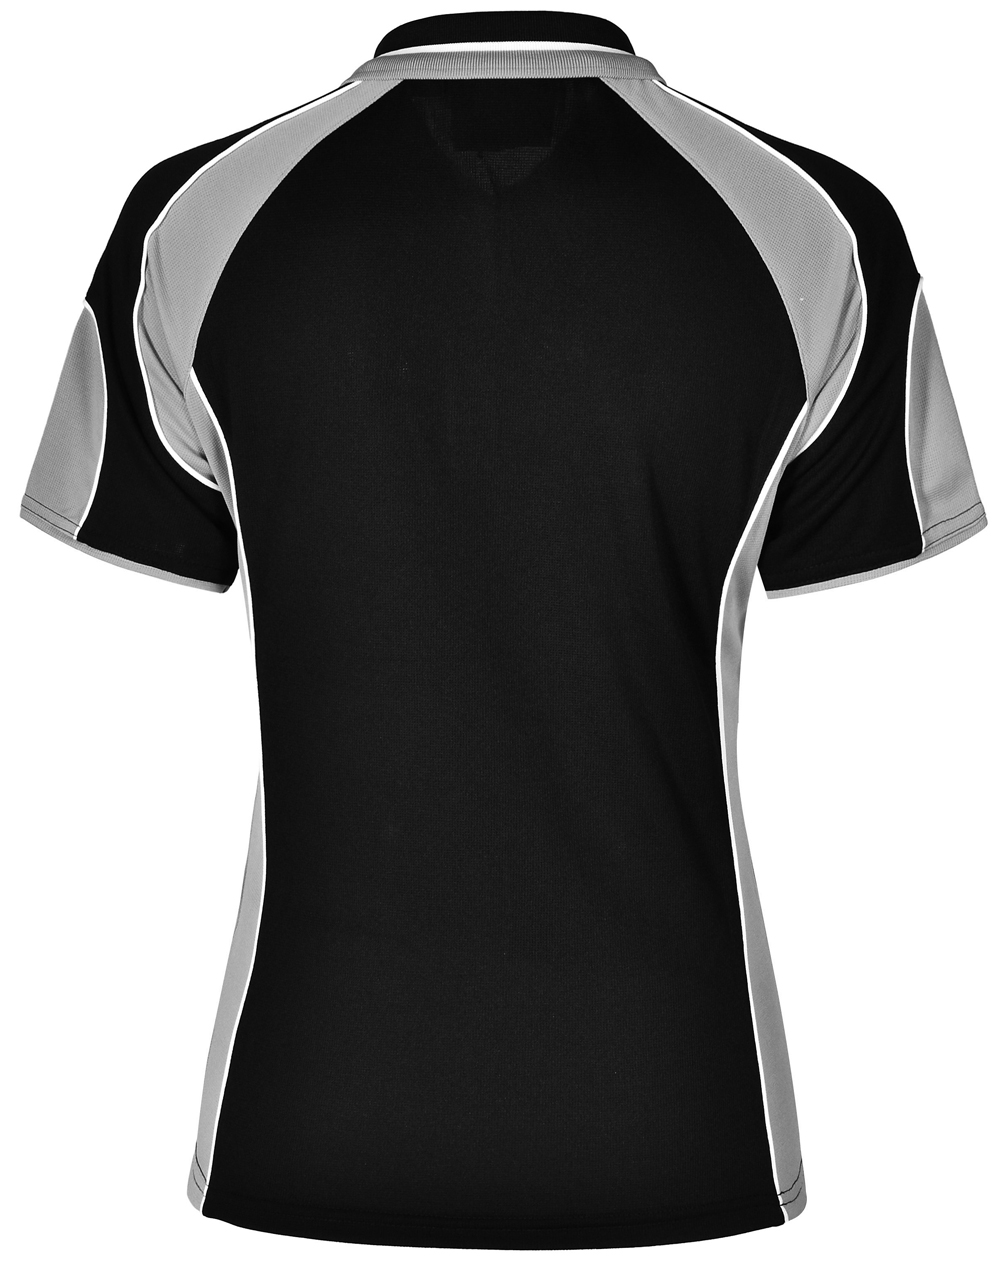 https://s3-ap-southeast-1.amazonaws.com/ws-imgs/POLOSHIRTS/PS62_BlackAsh_Back.jpg